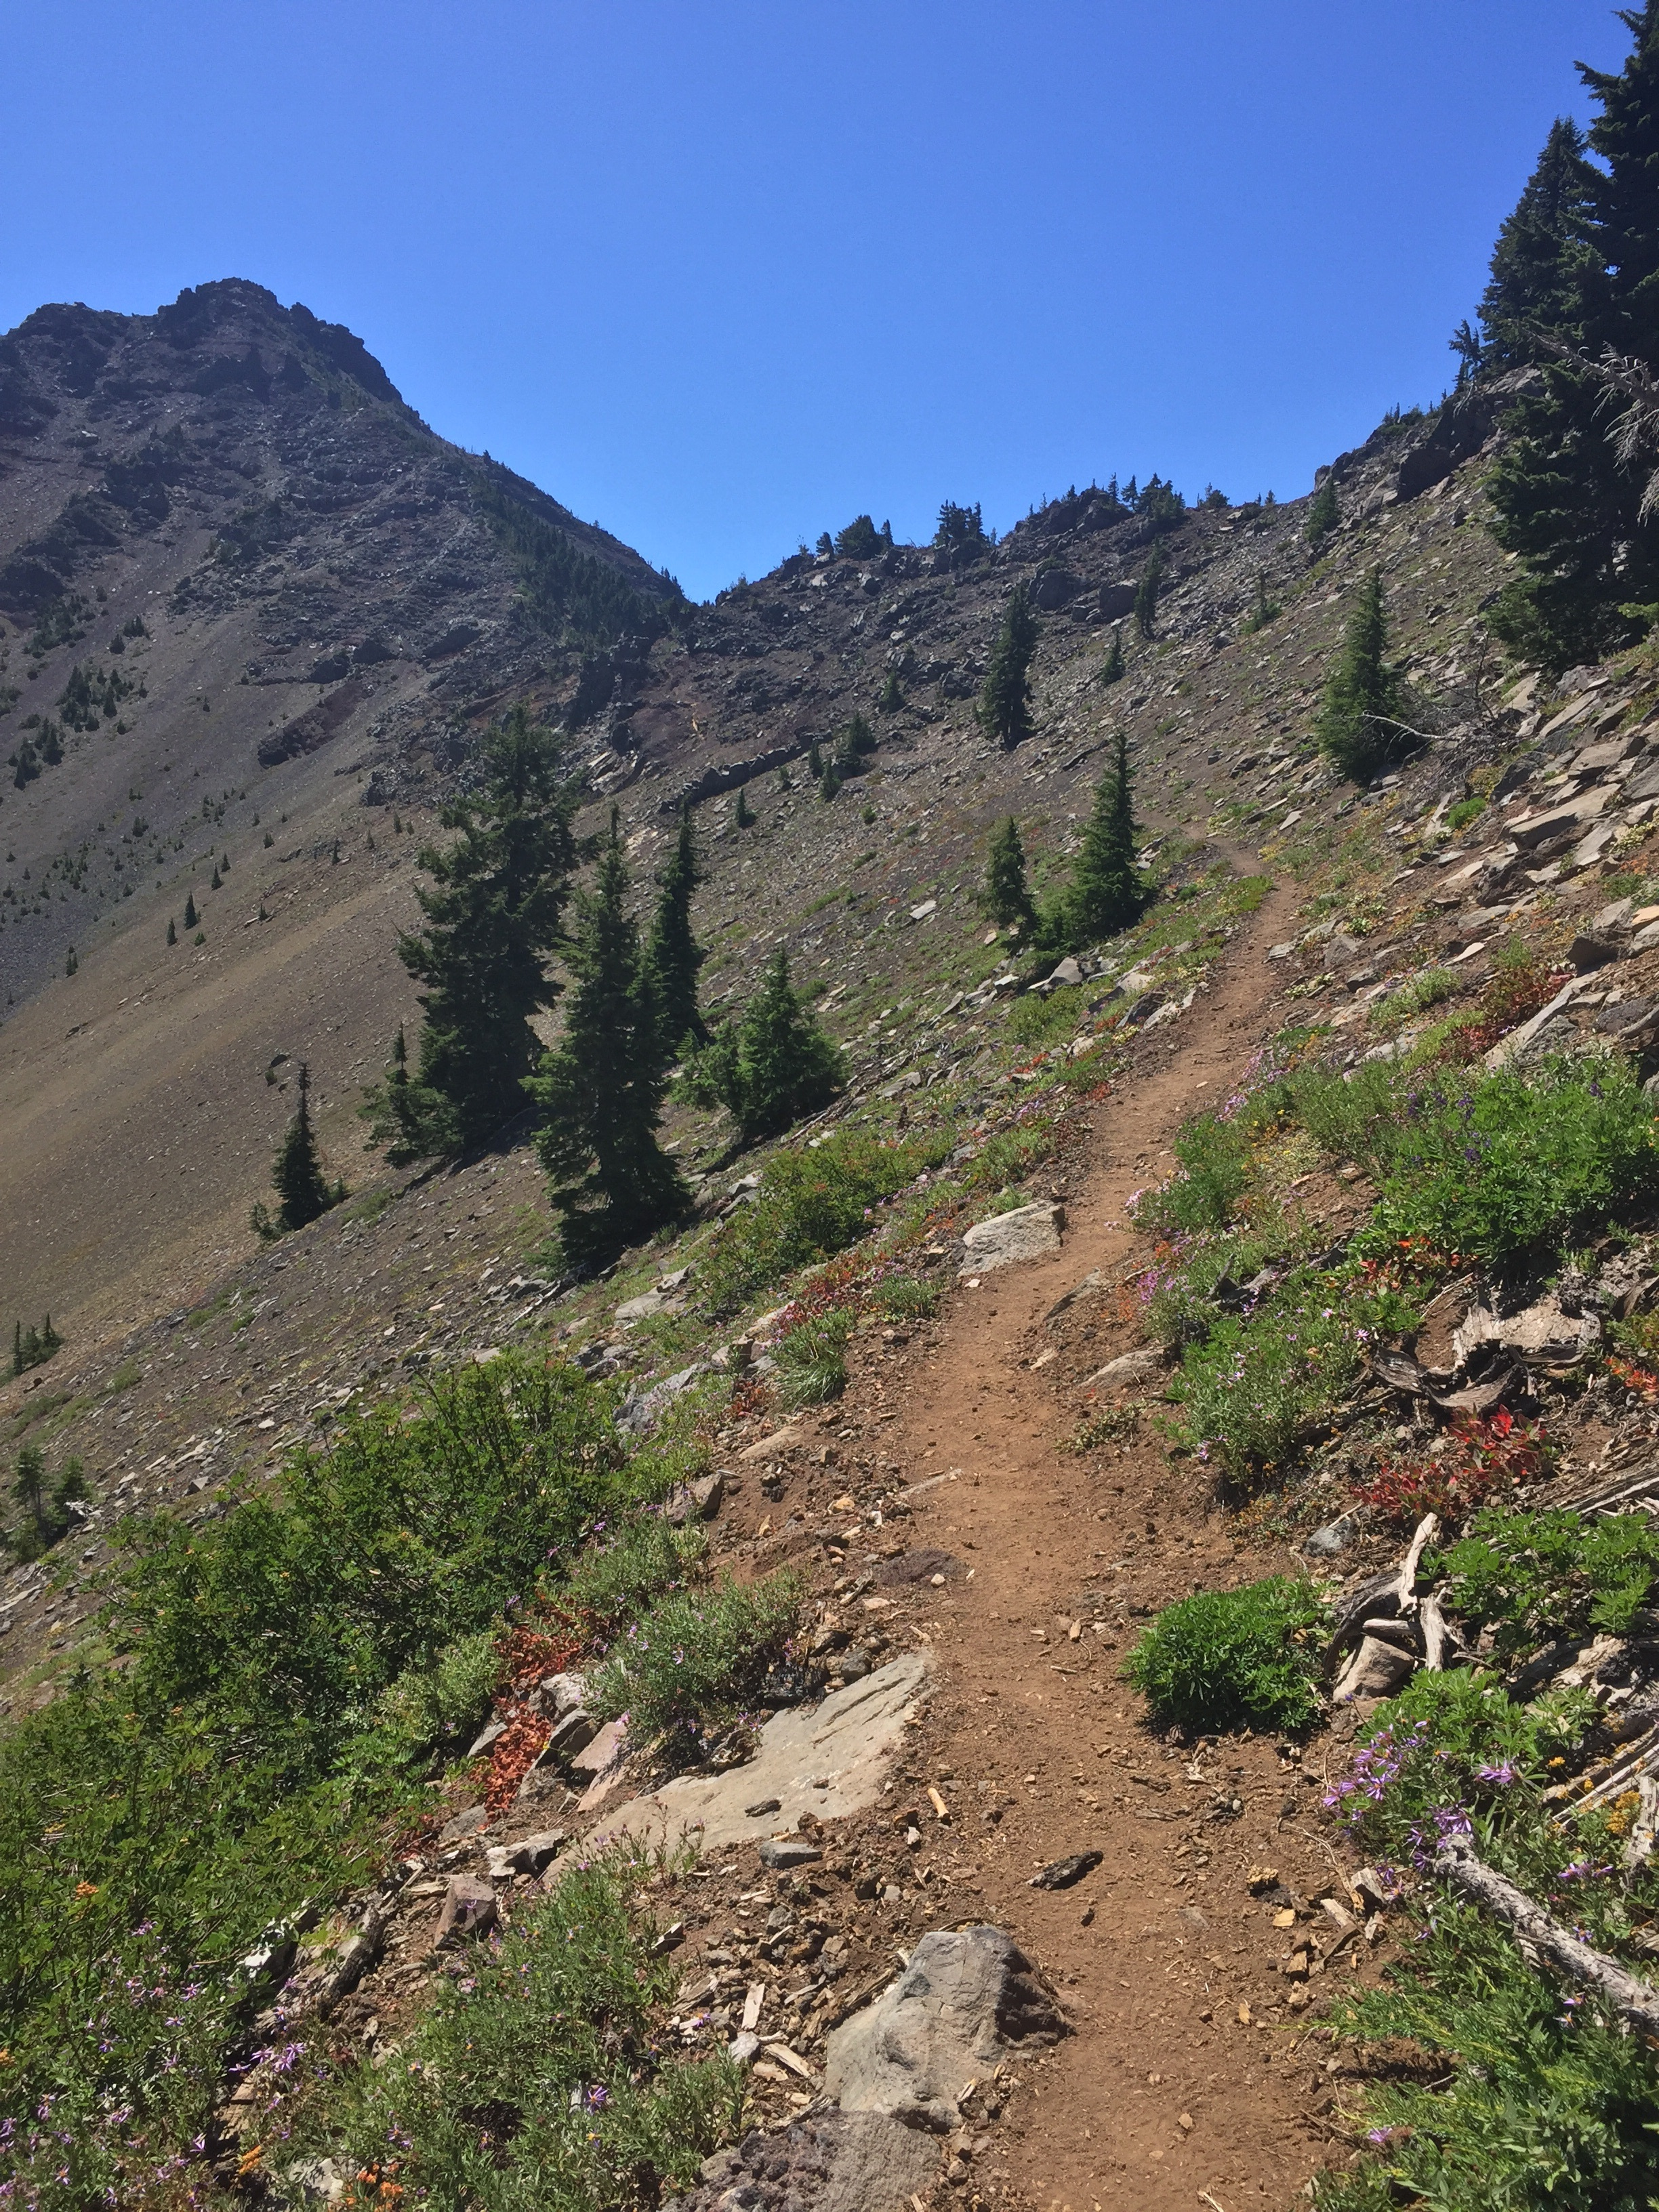 After miles of getting closer, we are on final approach to the shoulder of 3-Fingered Jack